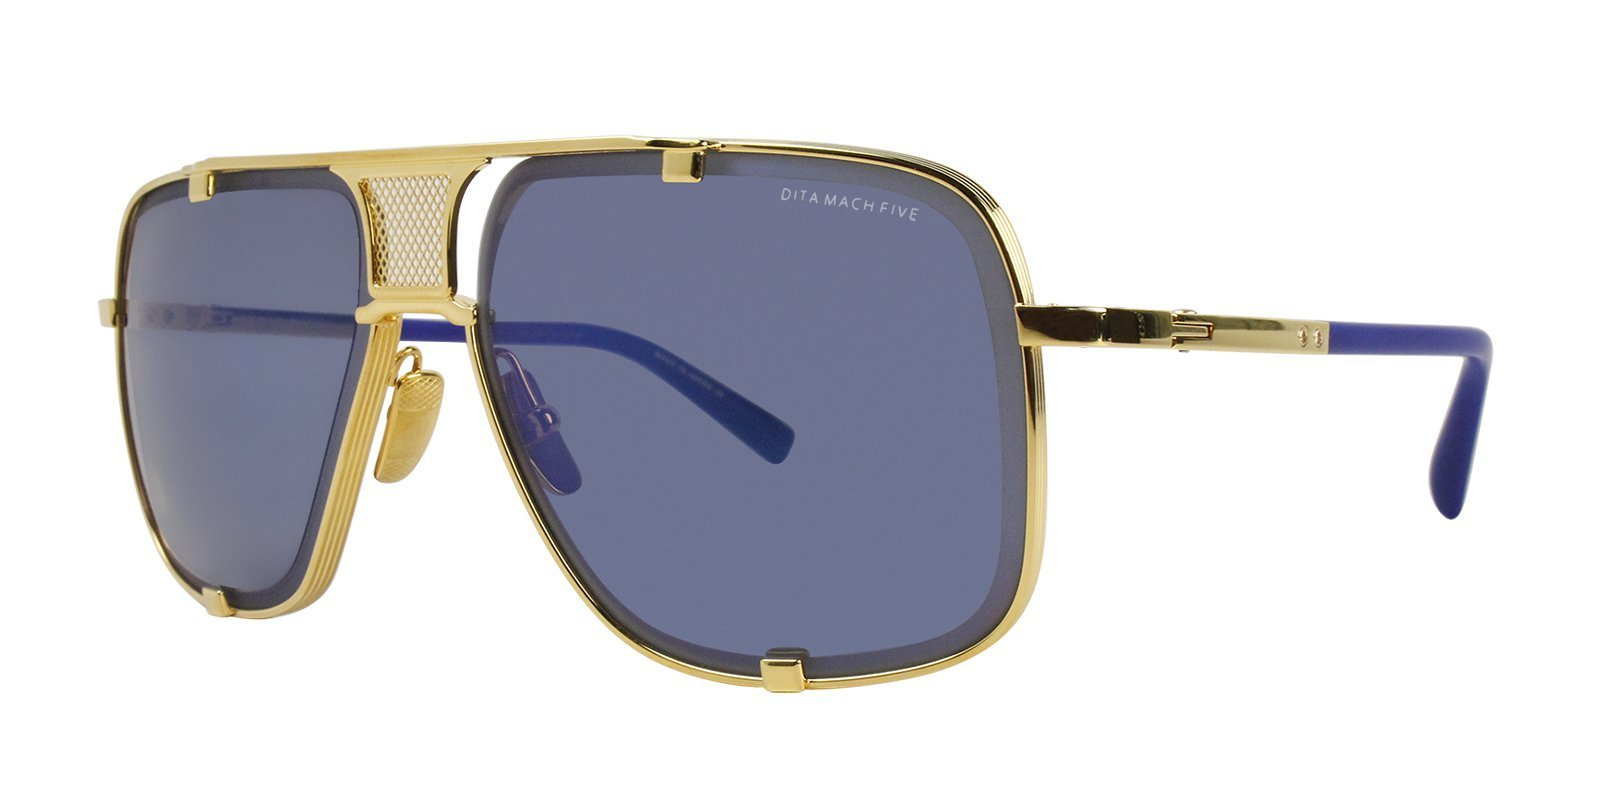 1b7ef78a8fa7 Dita - Mach Five Gold - Blue sunglasses